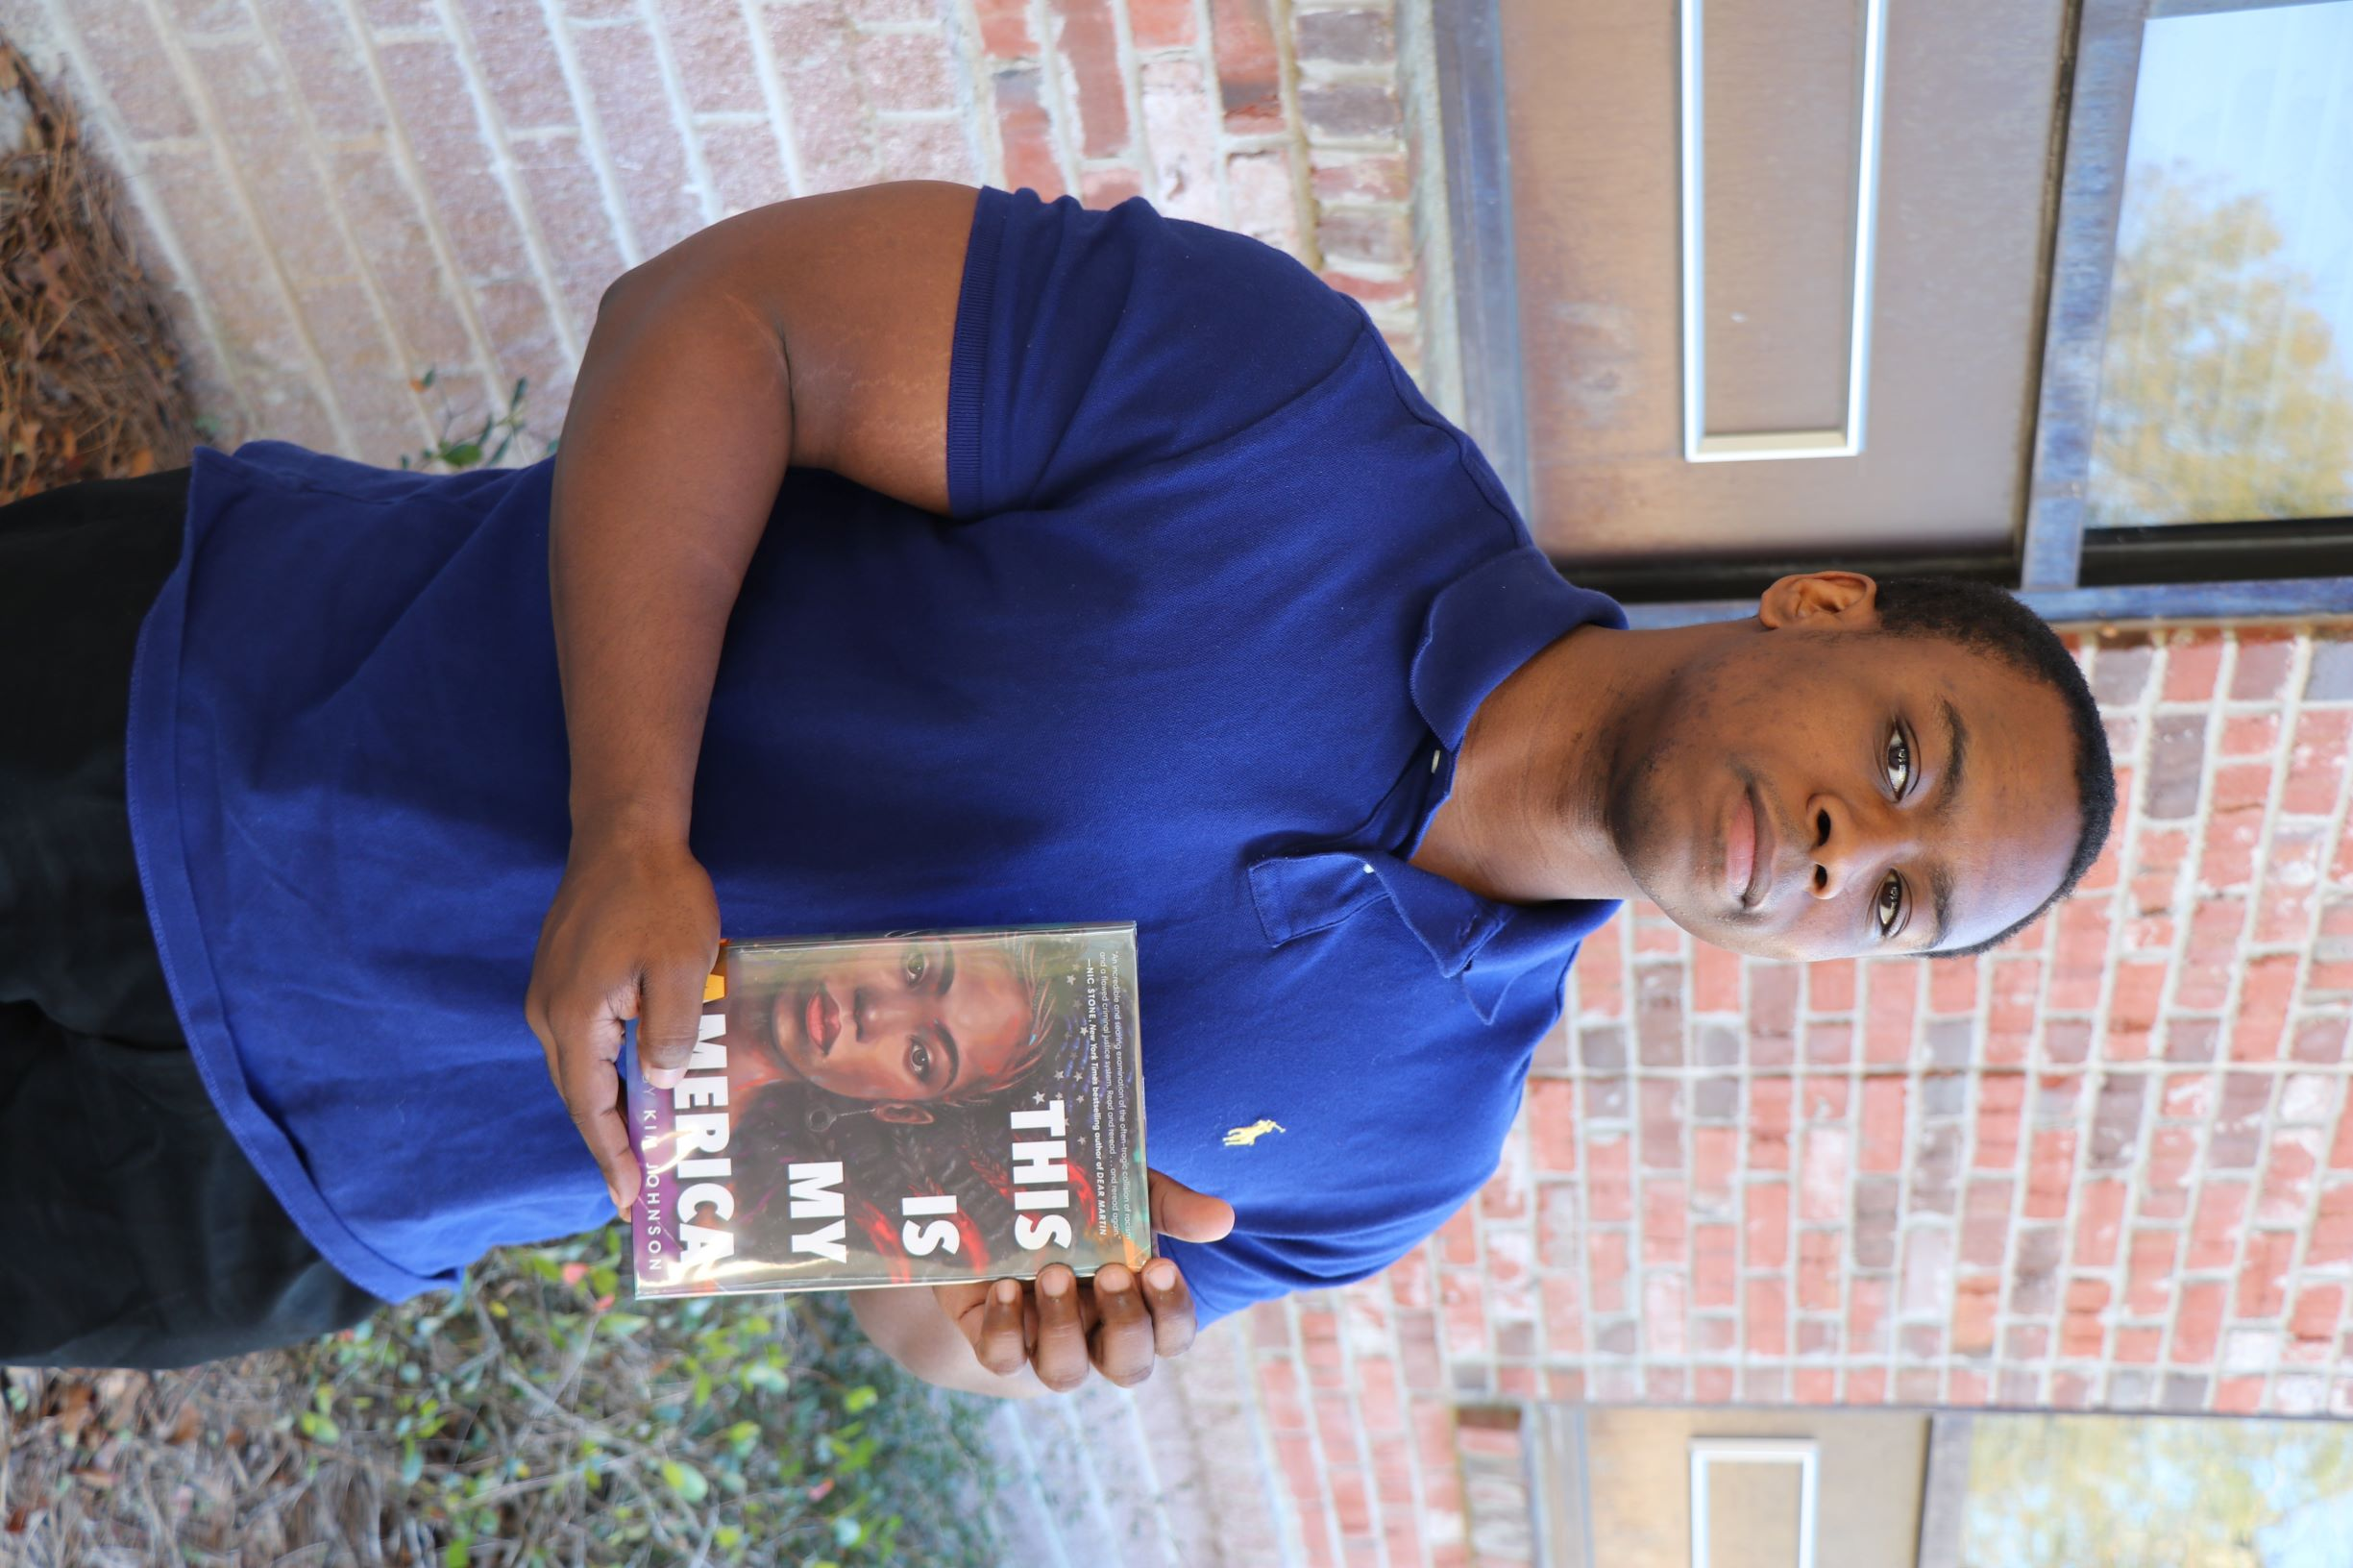 A man stands in front of a brick wall. He is holding the book This Is My America.